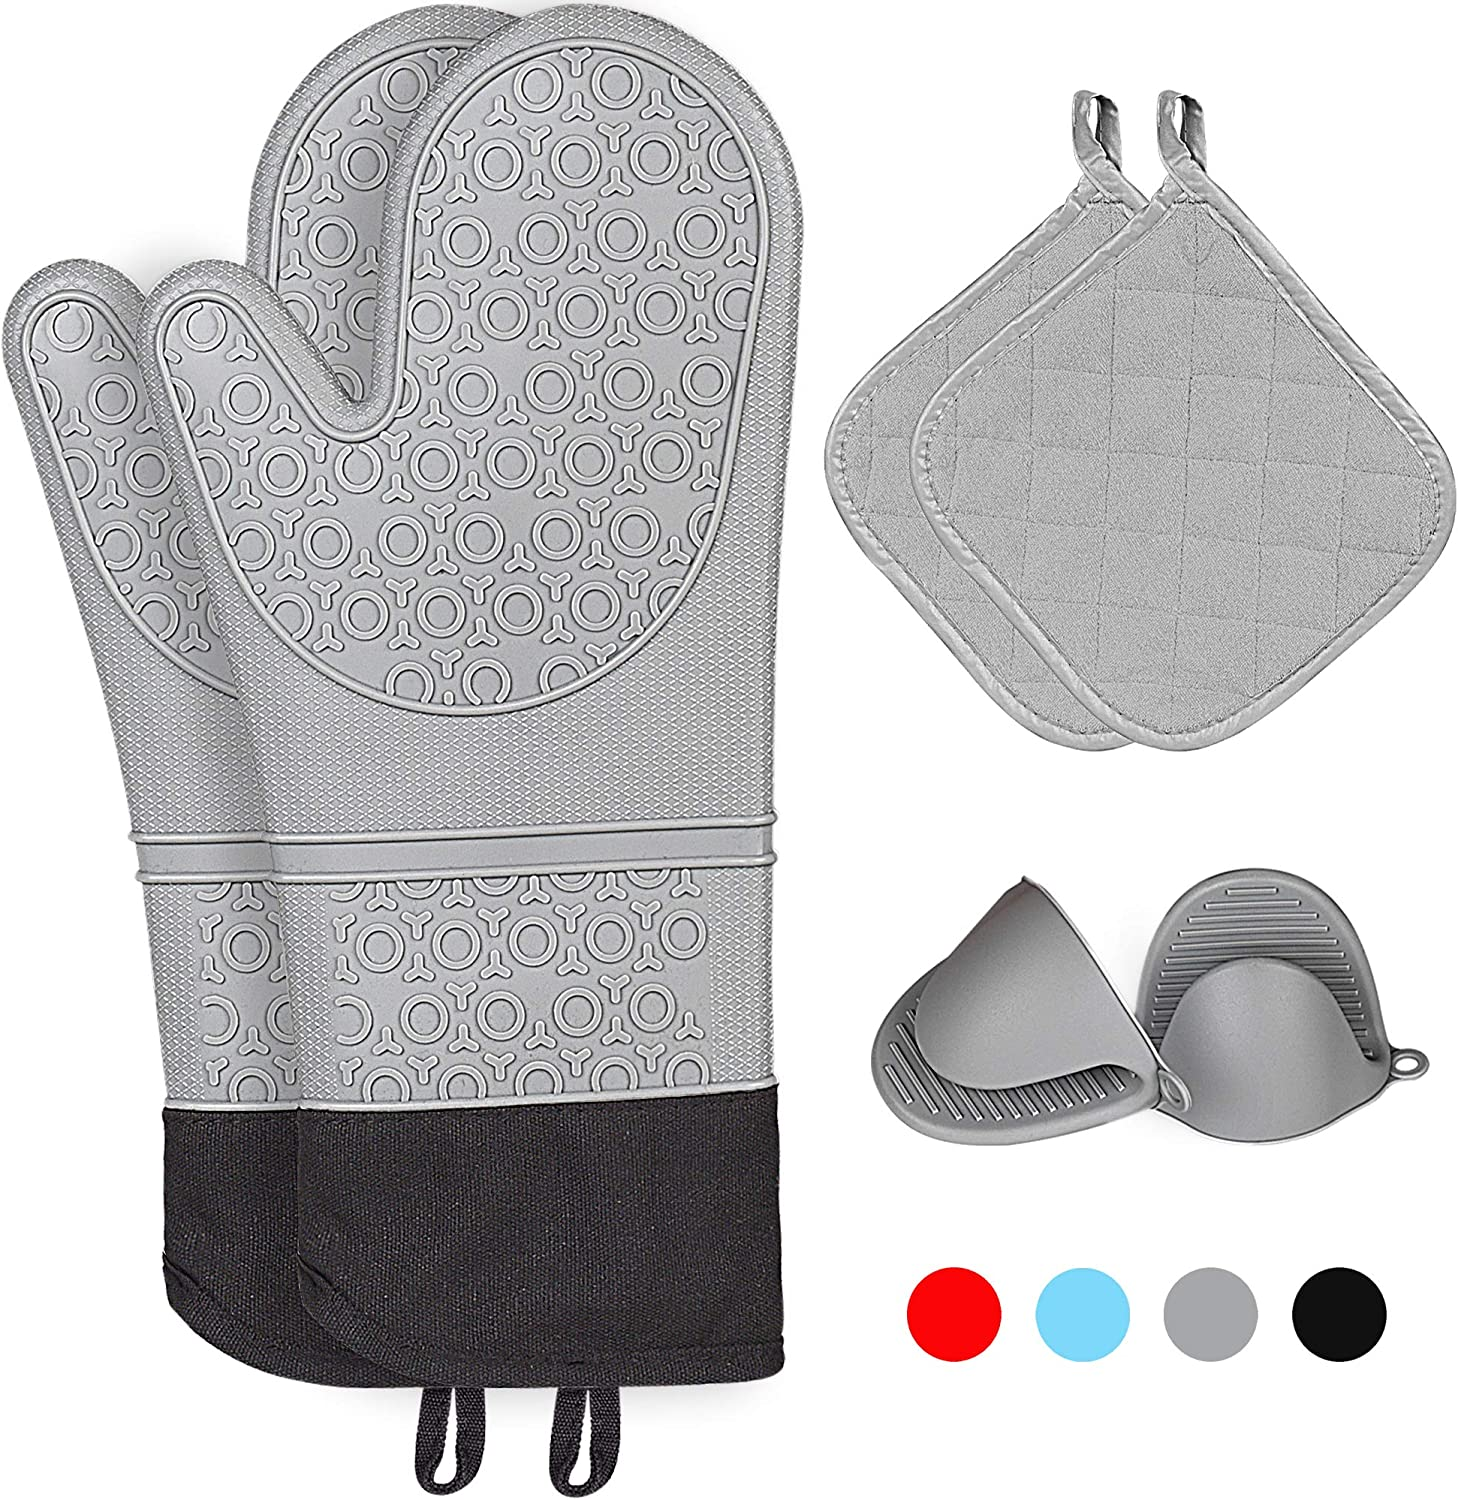 Kiya Silicone Oven Mitts & 2 Pot Holders & 2 Cooking Pinch Mitts(6-Piece Sets) - Heat Resistant to 460 F - Extra Long Oven Gloves with Soft Inner Lining (Grey)